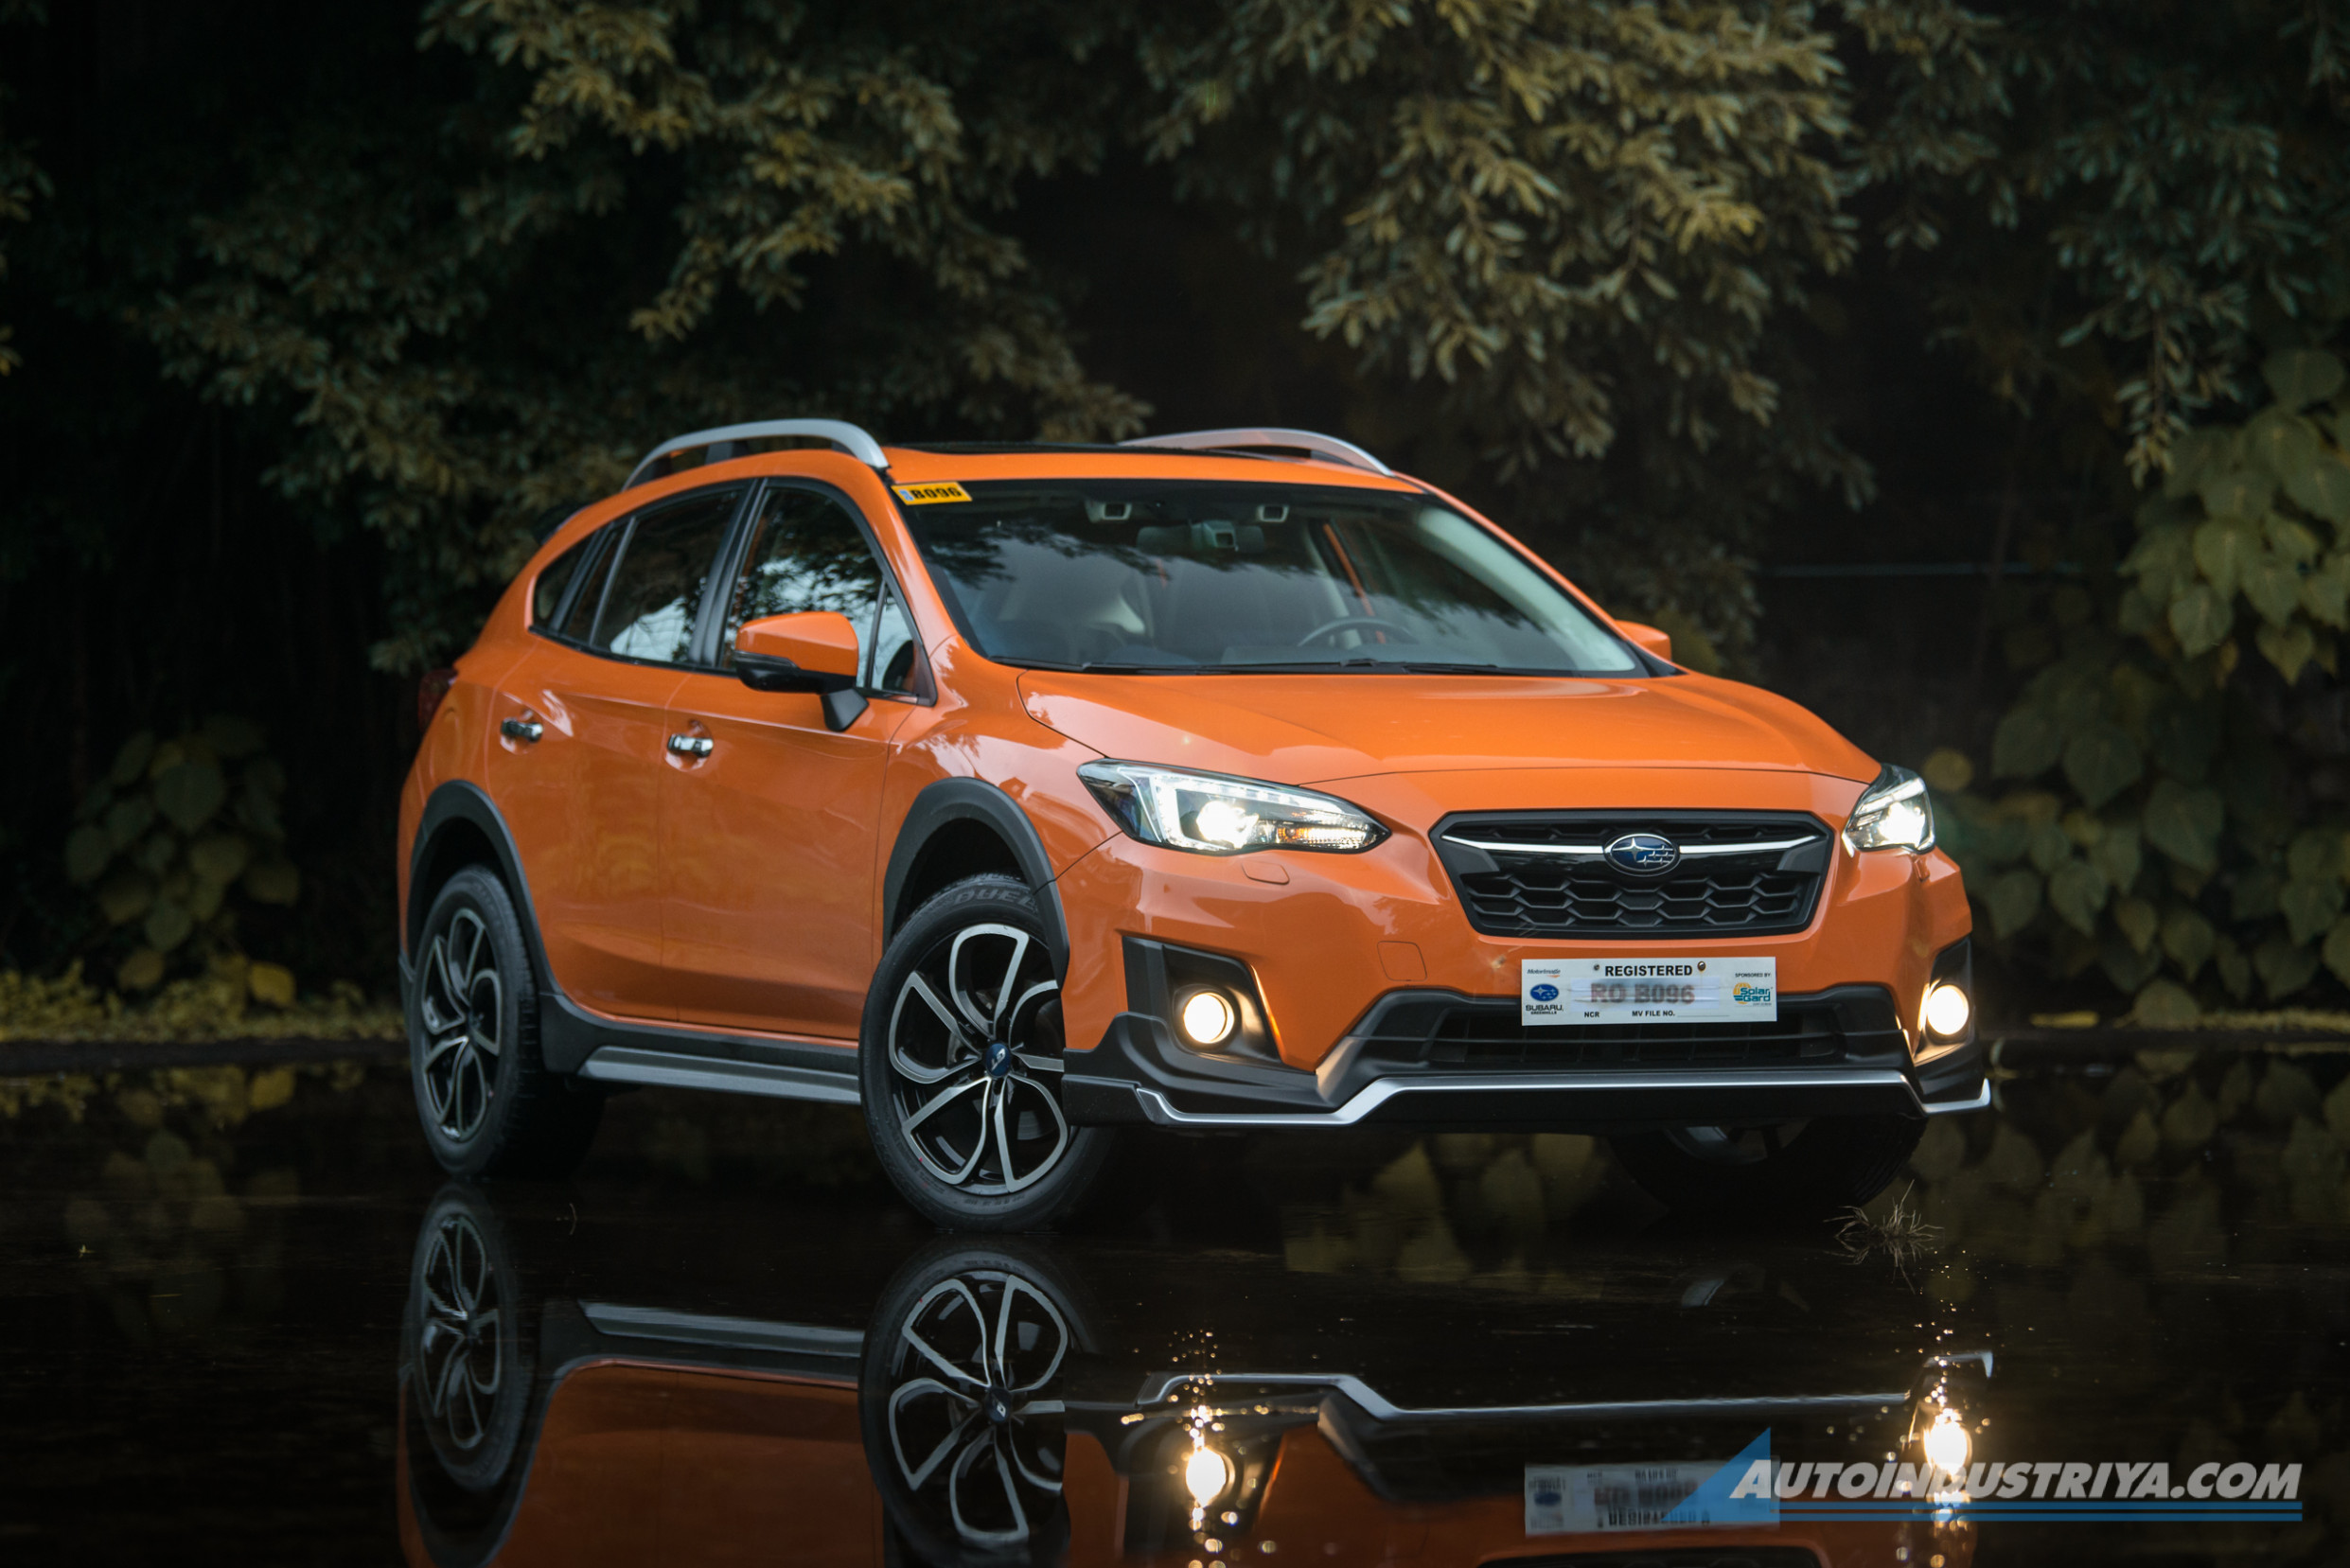 8 Subaru XV GT Edition 8.8i-S EyeSight - Car Reviews